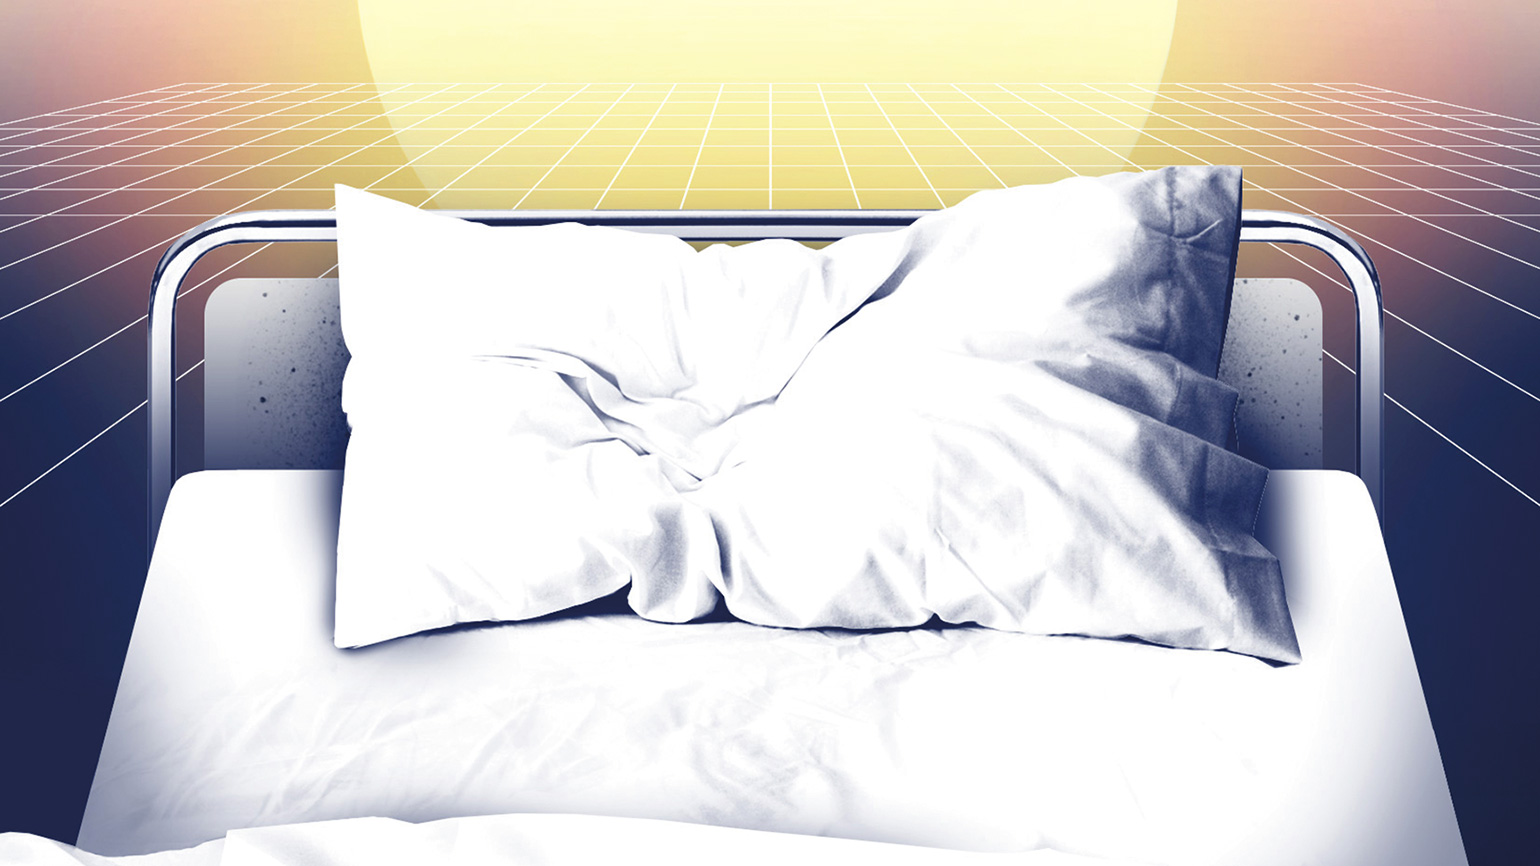 An artist's rendering of a glowing heavenly light hovering over a patient's bed